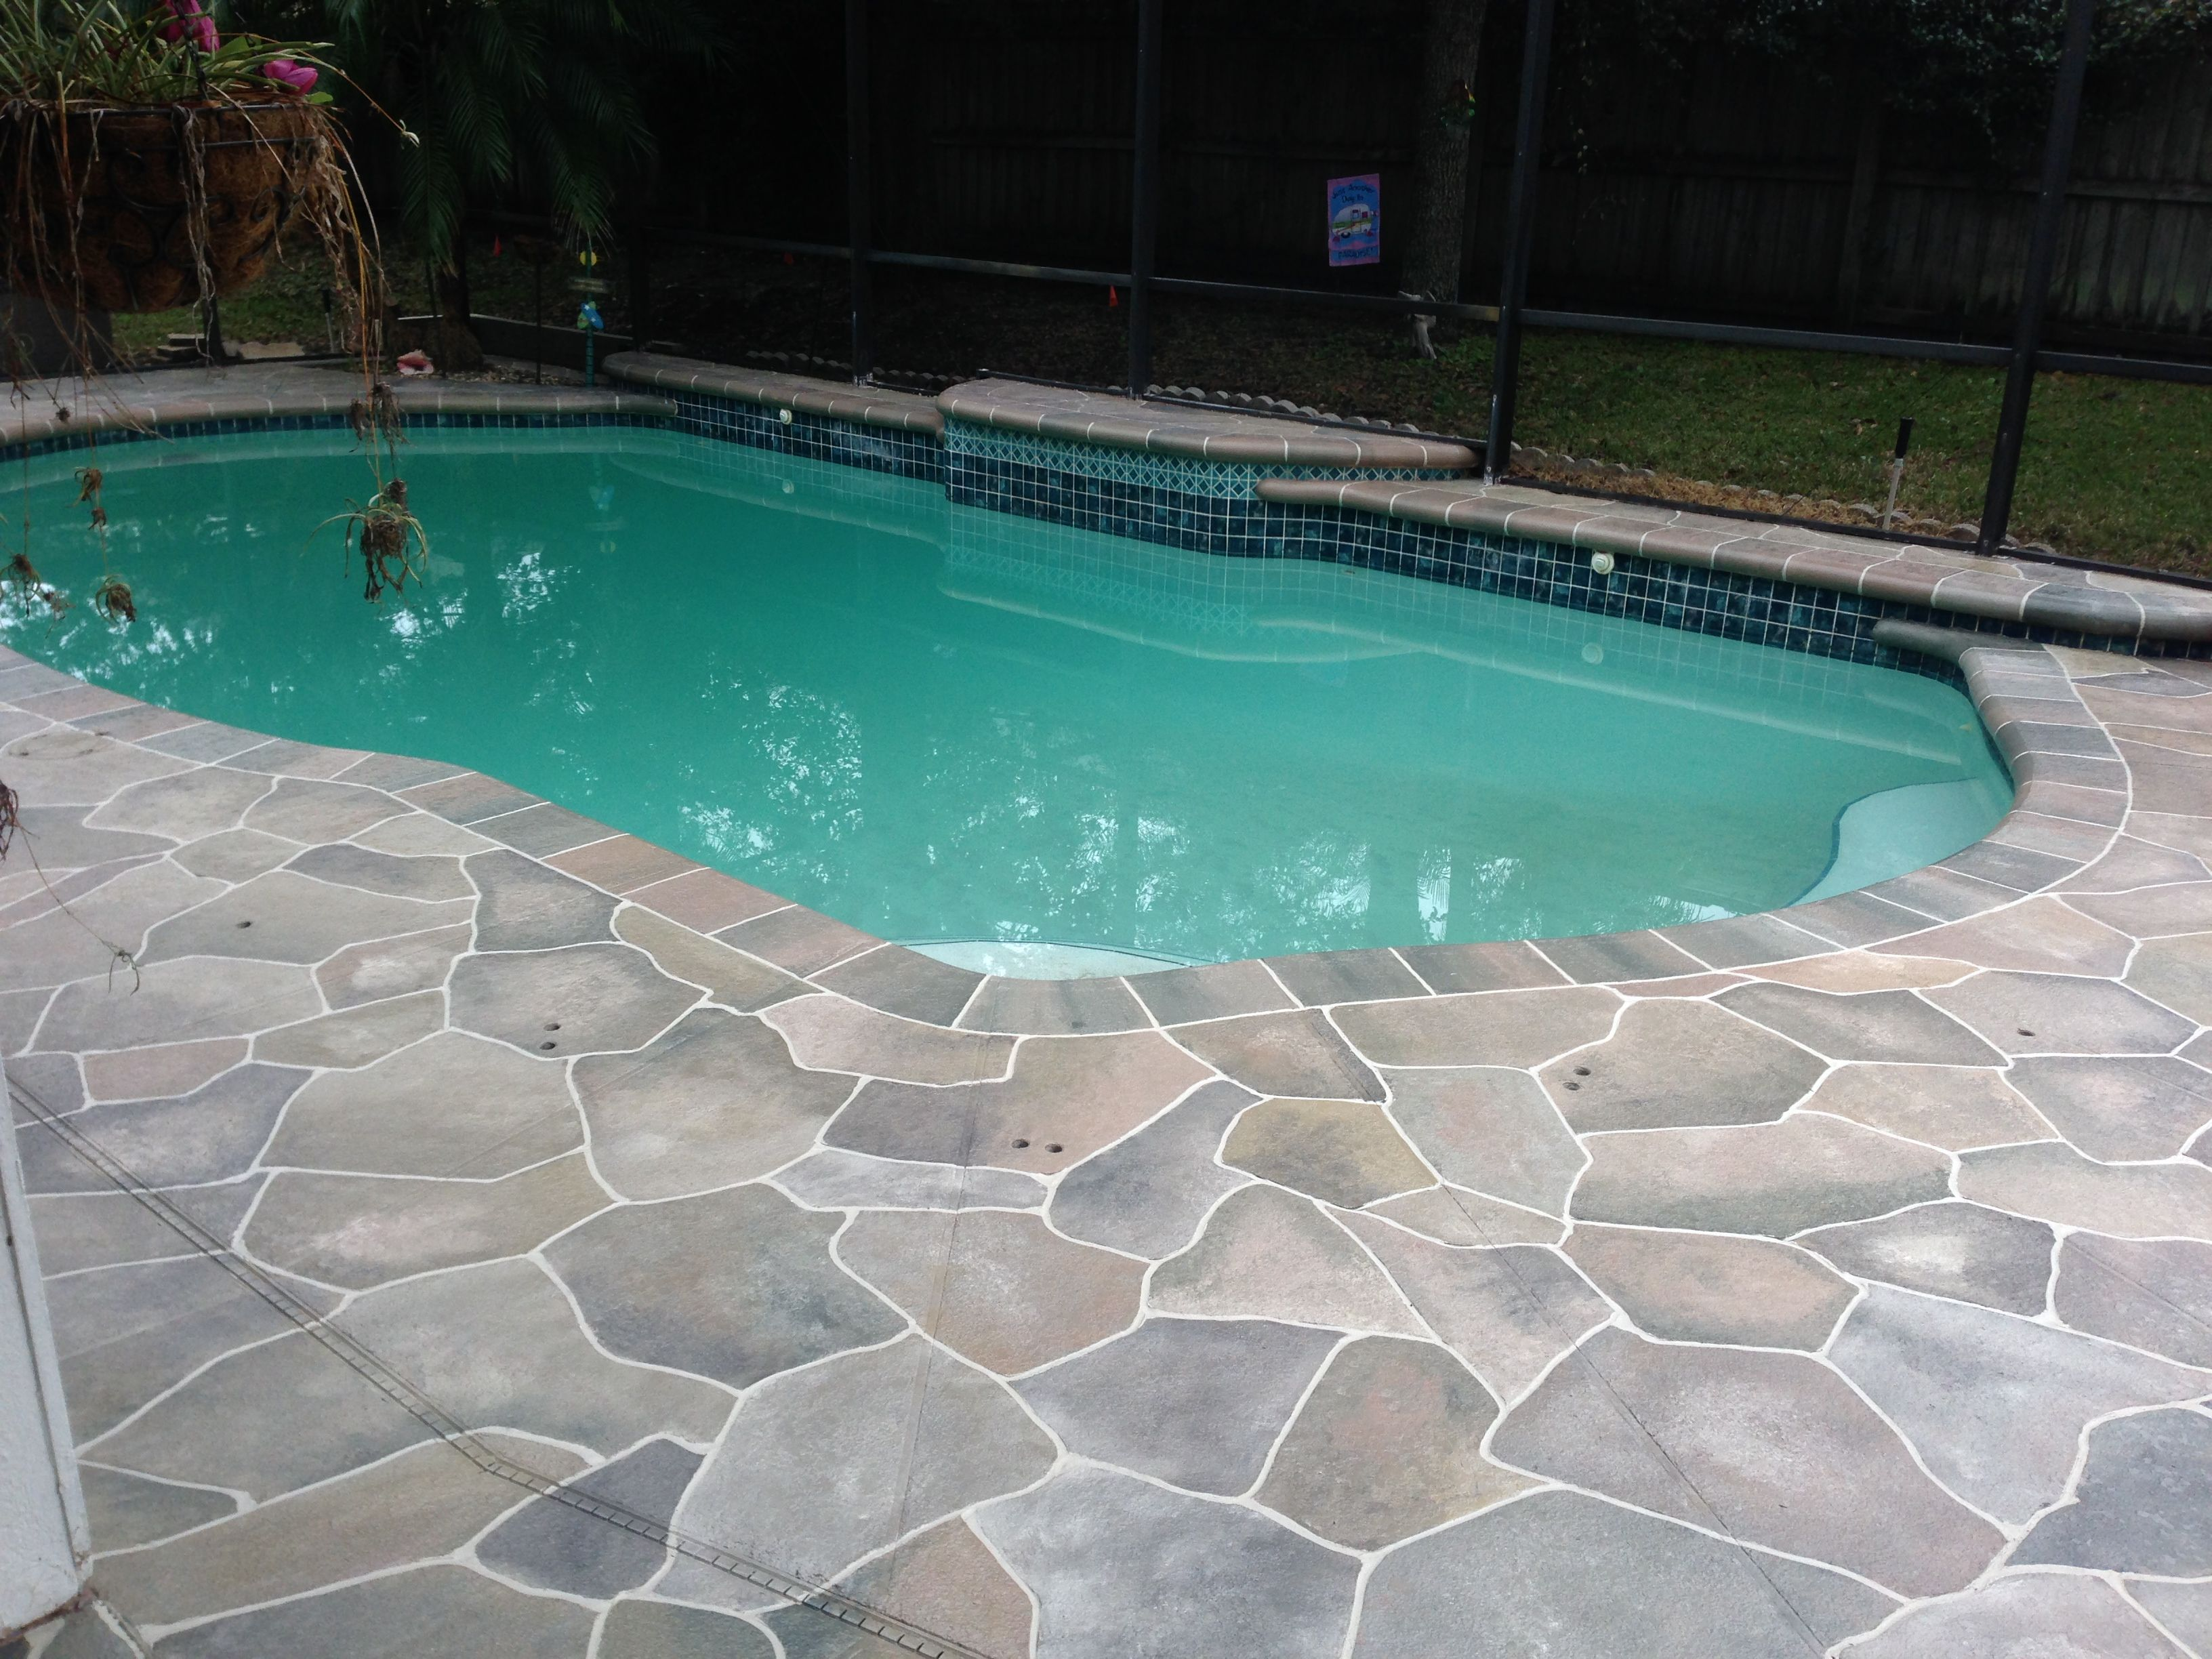 Pool Decking Ideas Concrete Concrete Pool Deck Colored Concrete Pool Deck  Ideas Flagstone Pool Deck  Concrete Pool Designs